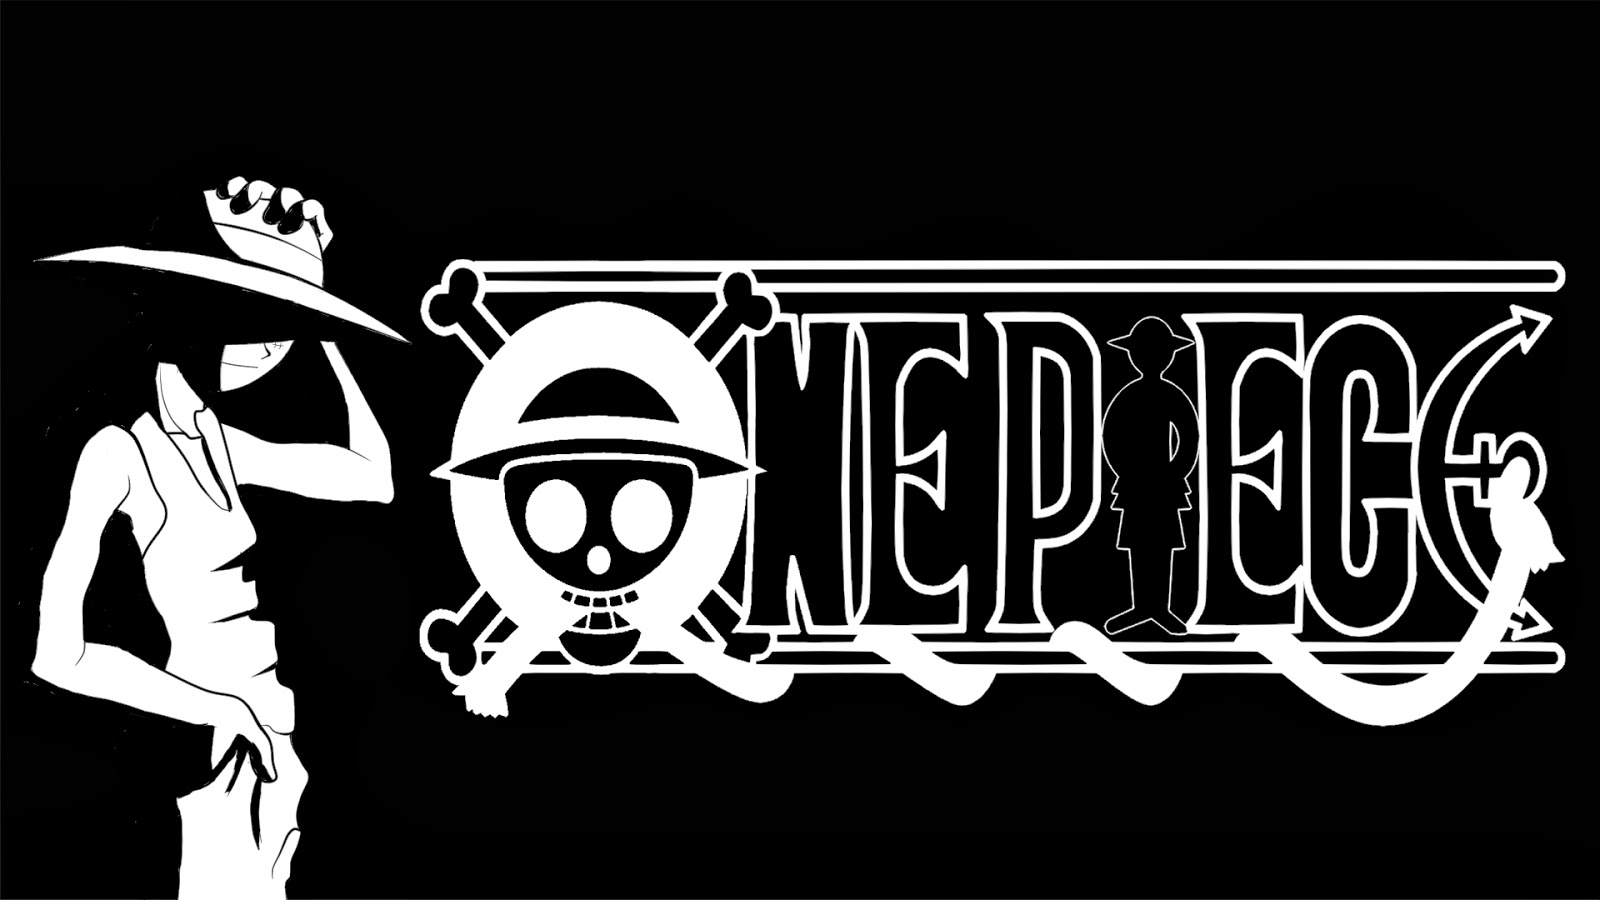 Below You Well Discover Amazing One Piece Wallpapers With HD